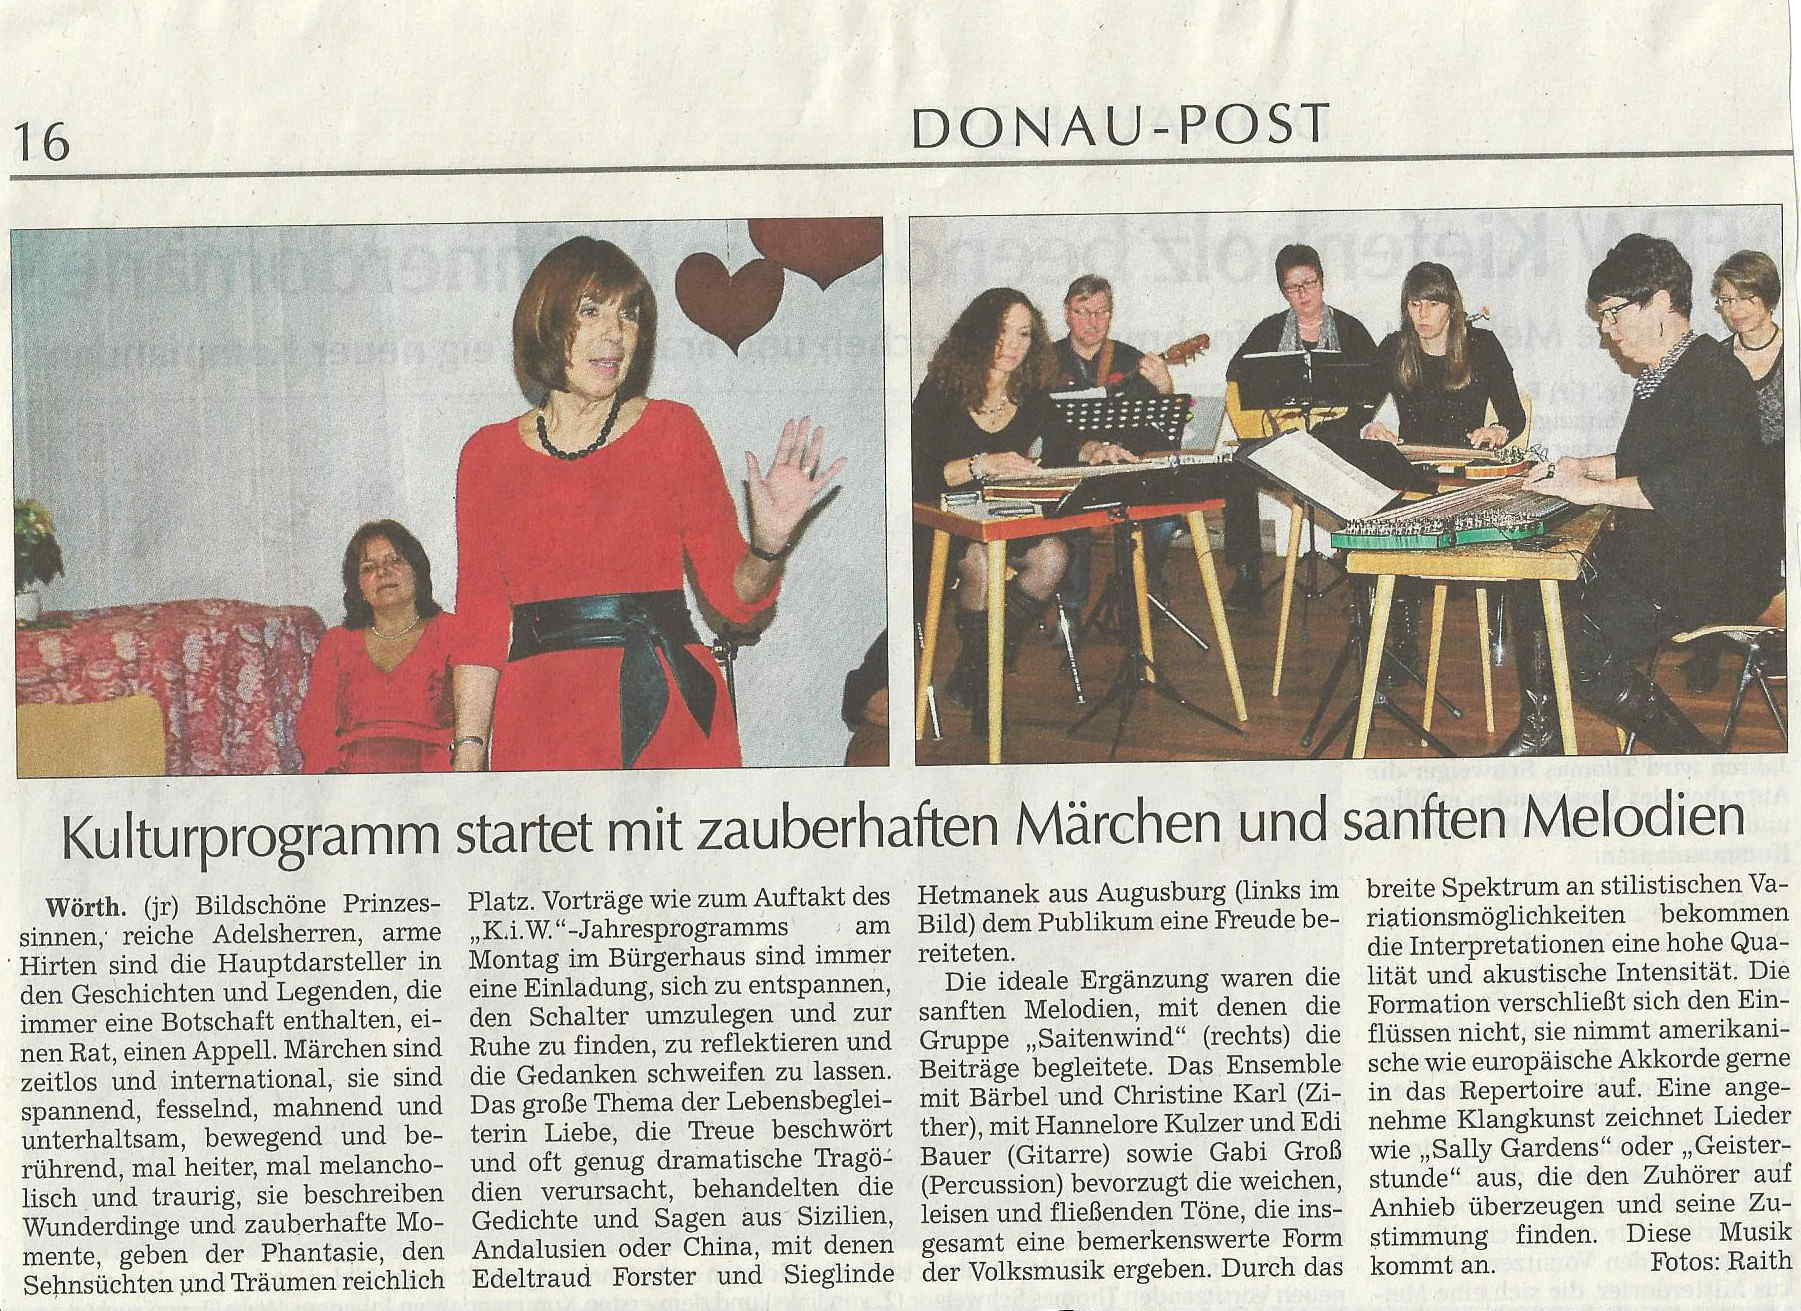 artikel aus der donaupost. Black Bedroom Furniture Sets. Home Design Ideas